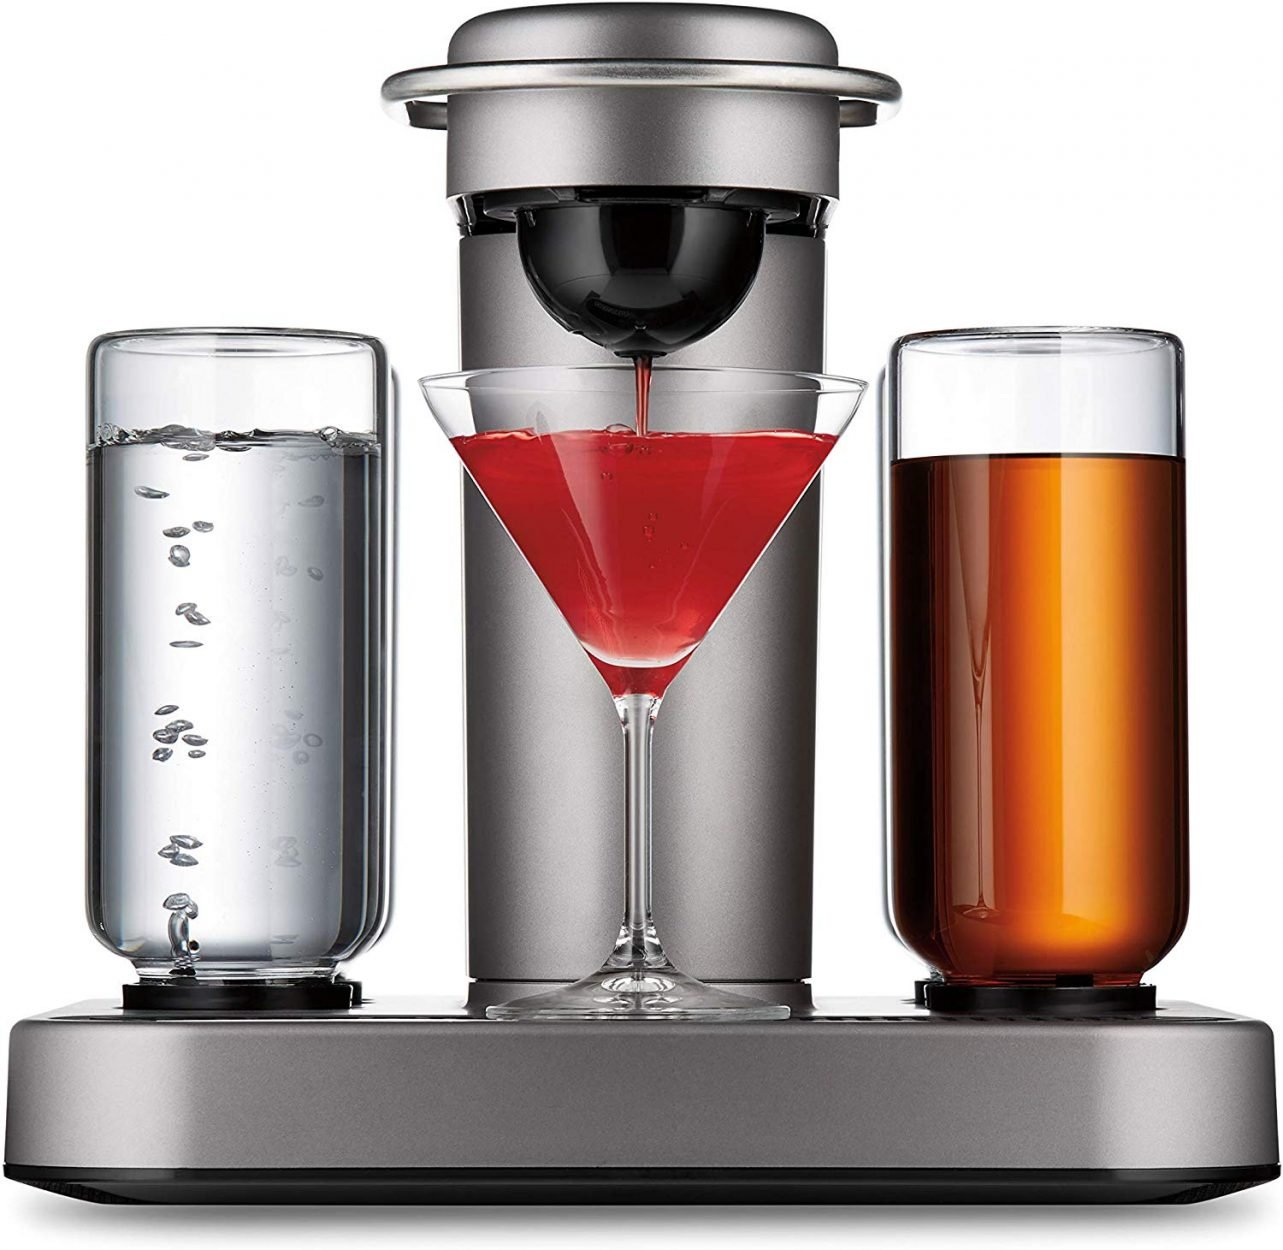 Bartesian At-Home Cocktail Machine